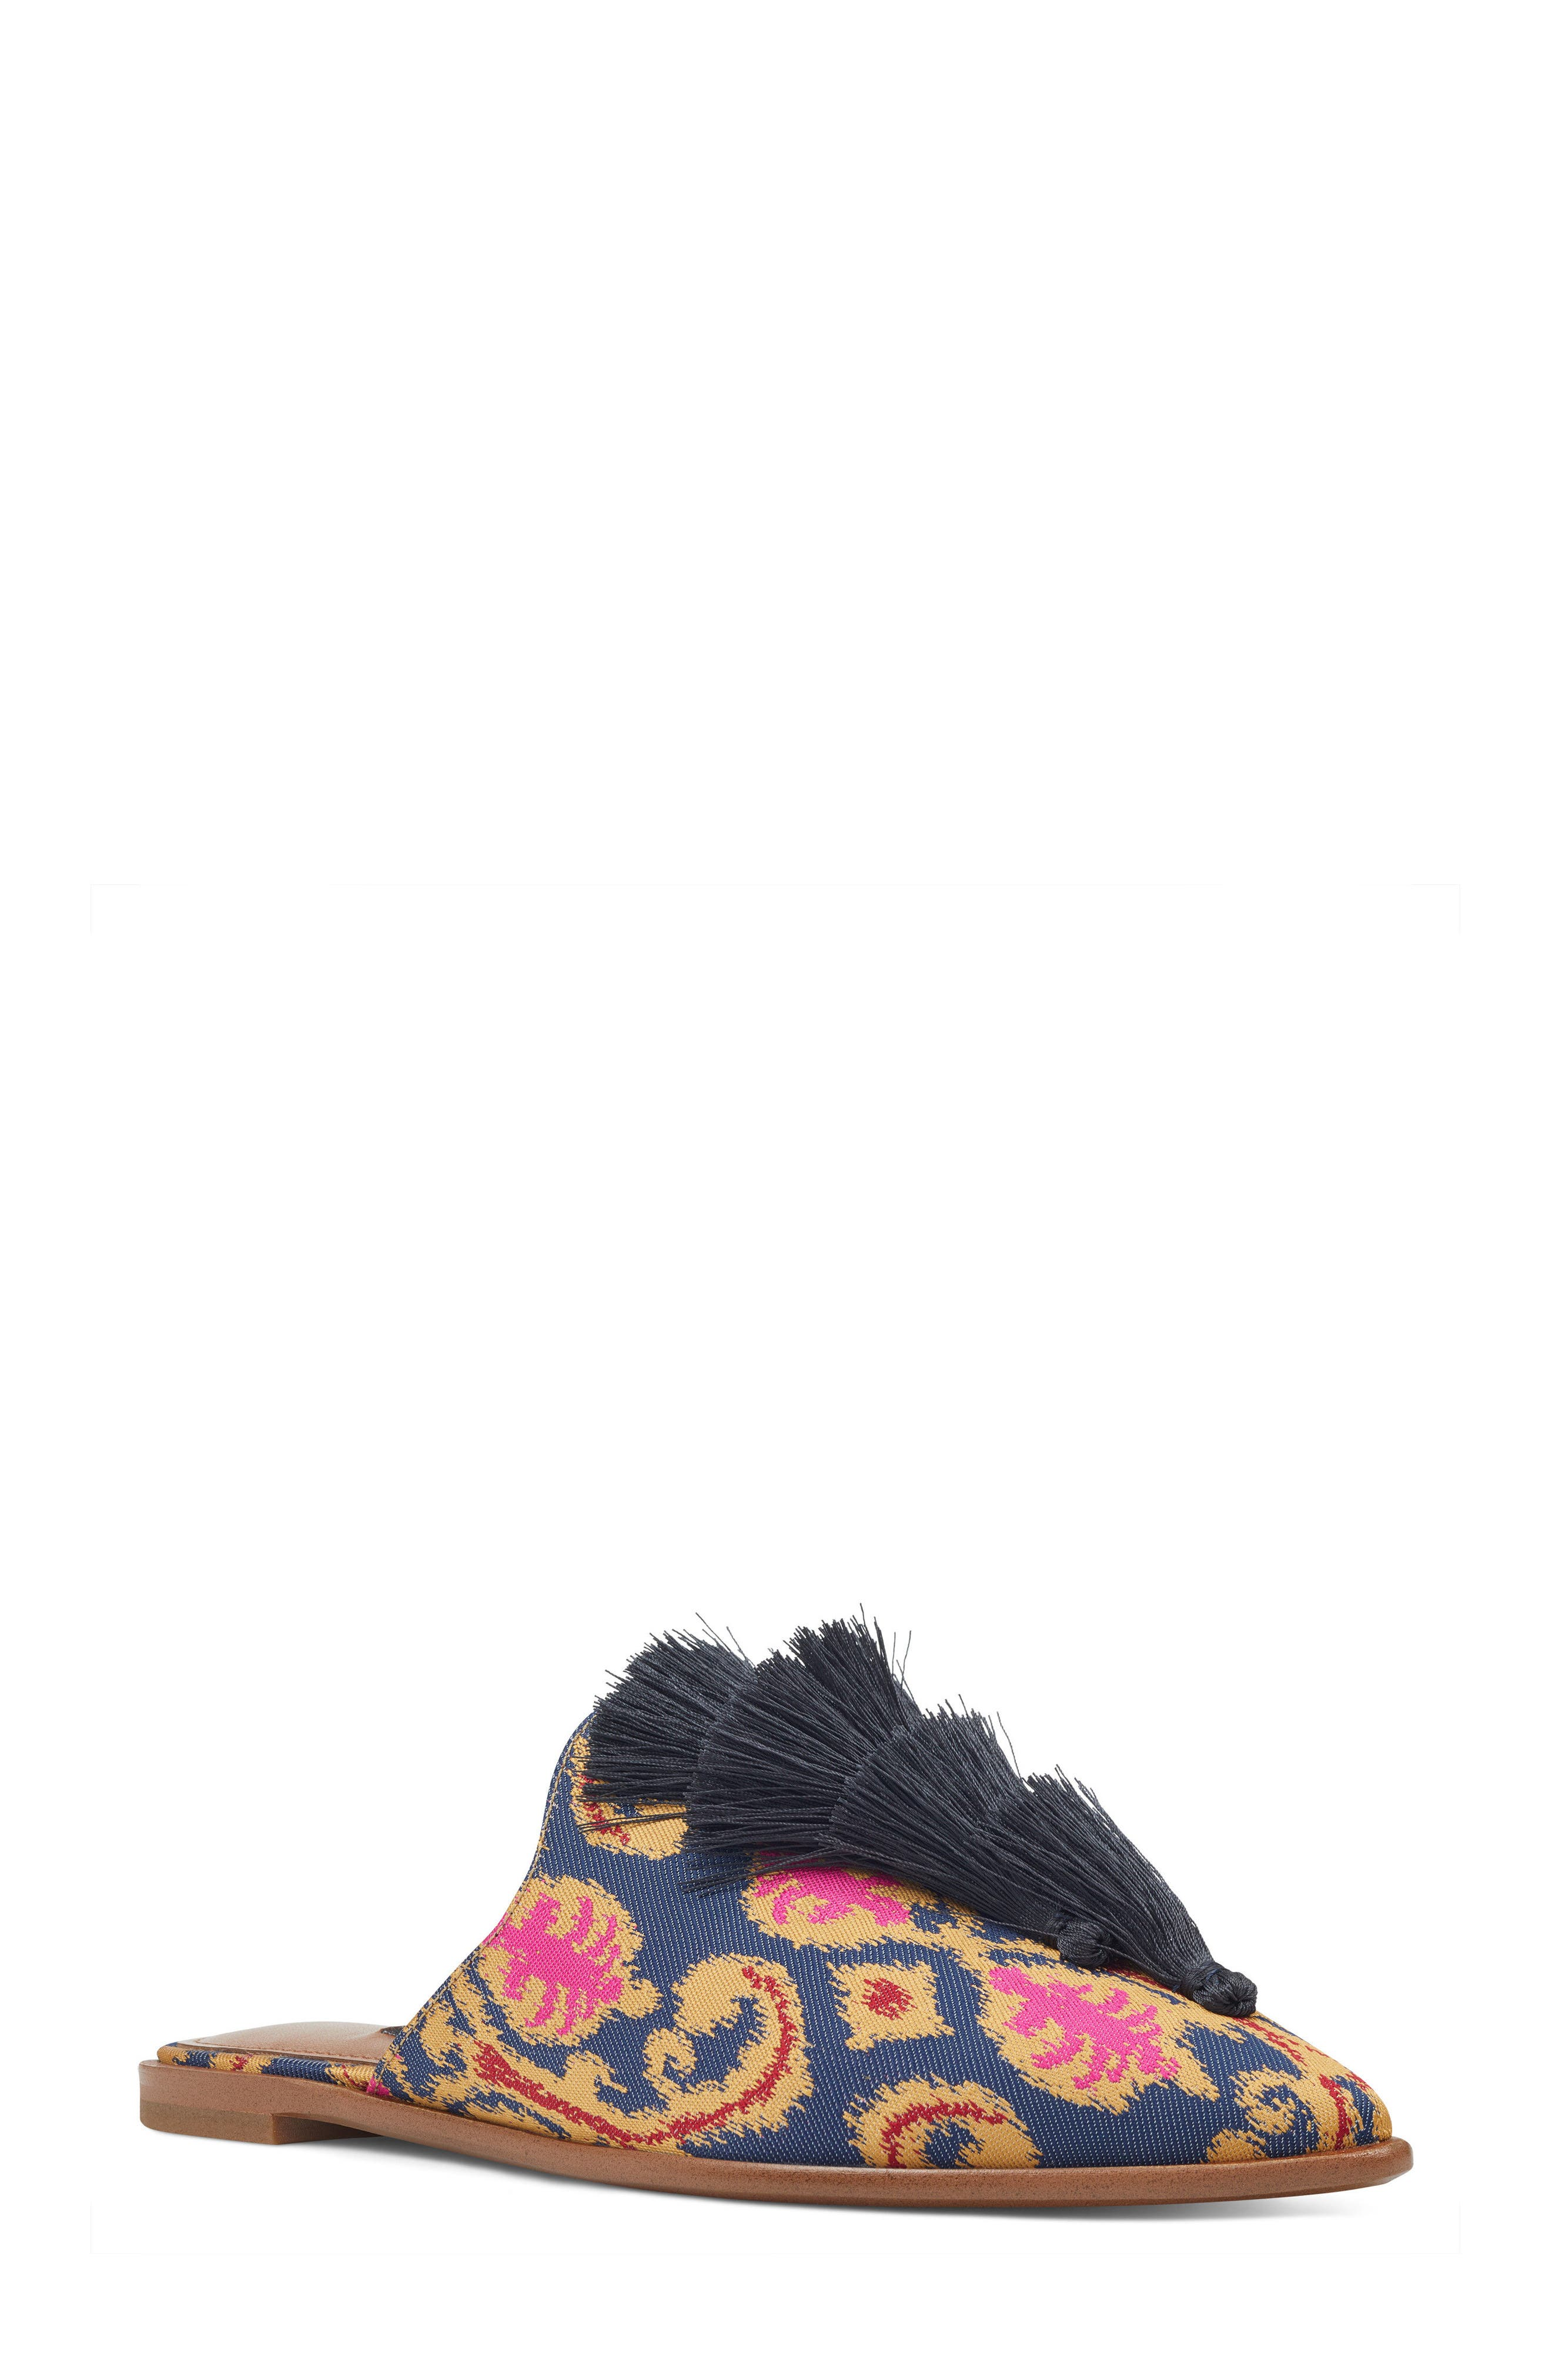 Ollial Fringed Loafer Mule,                         Main,                         color, BLUE MULTI FABRIC